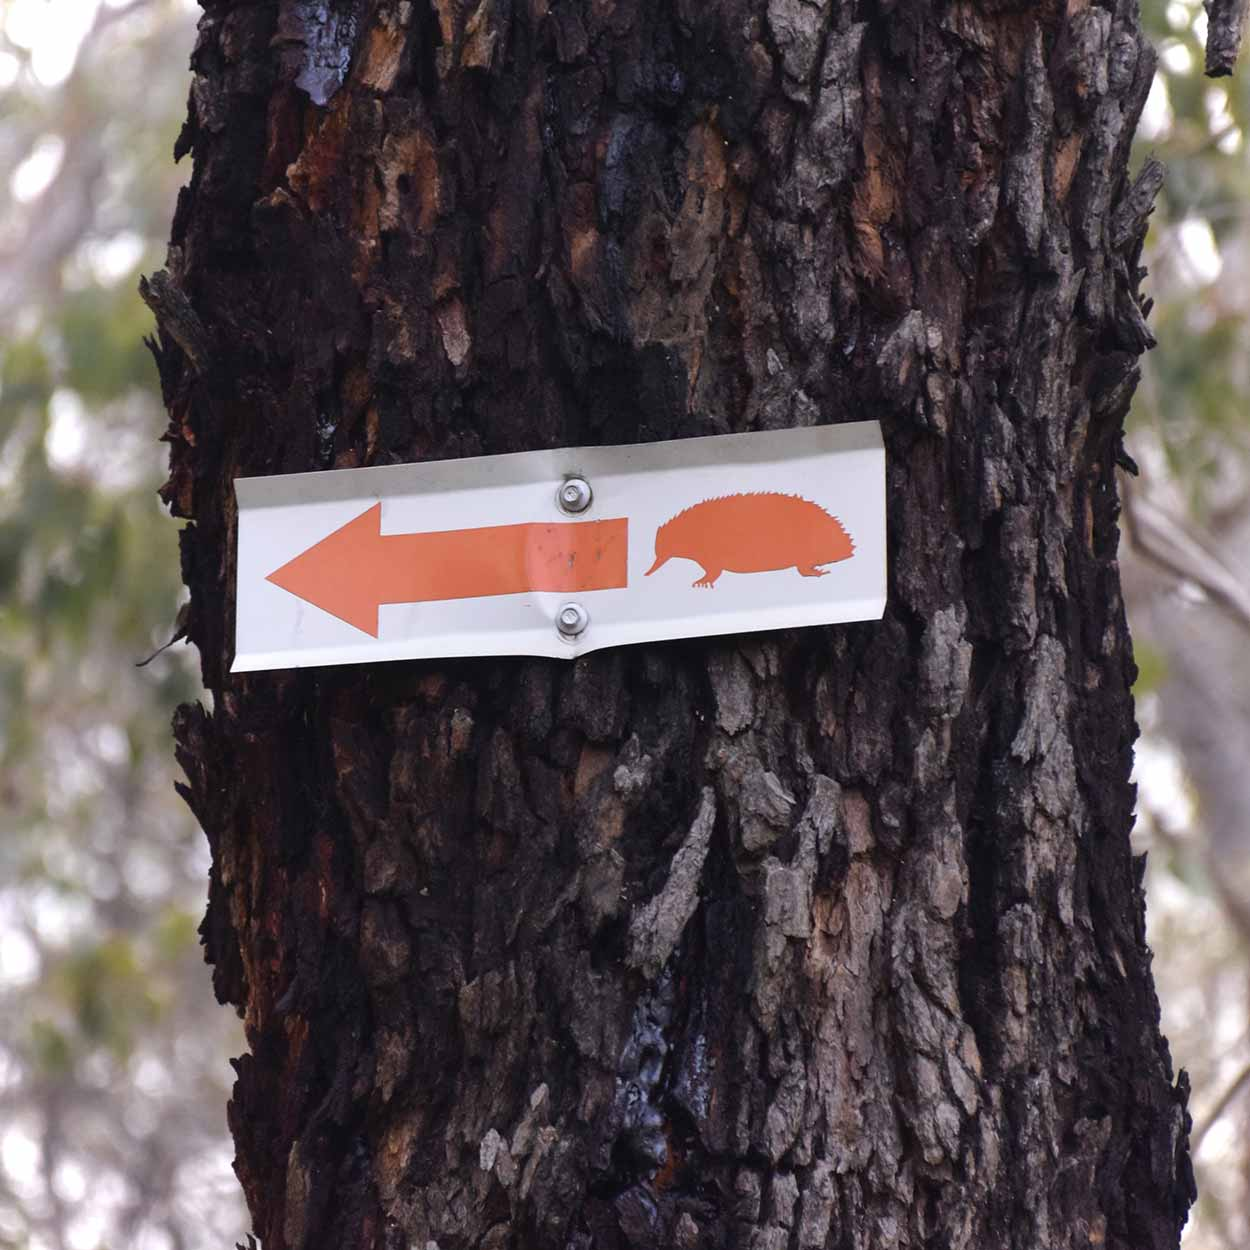 Trail marker for the Echindna Trail, Wungong Regional Park, Perth, Western Australia